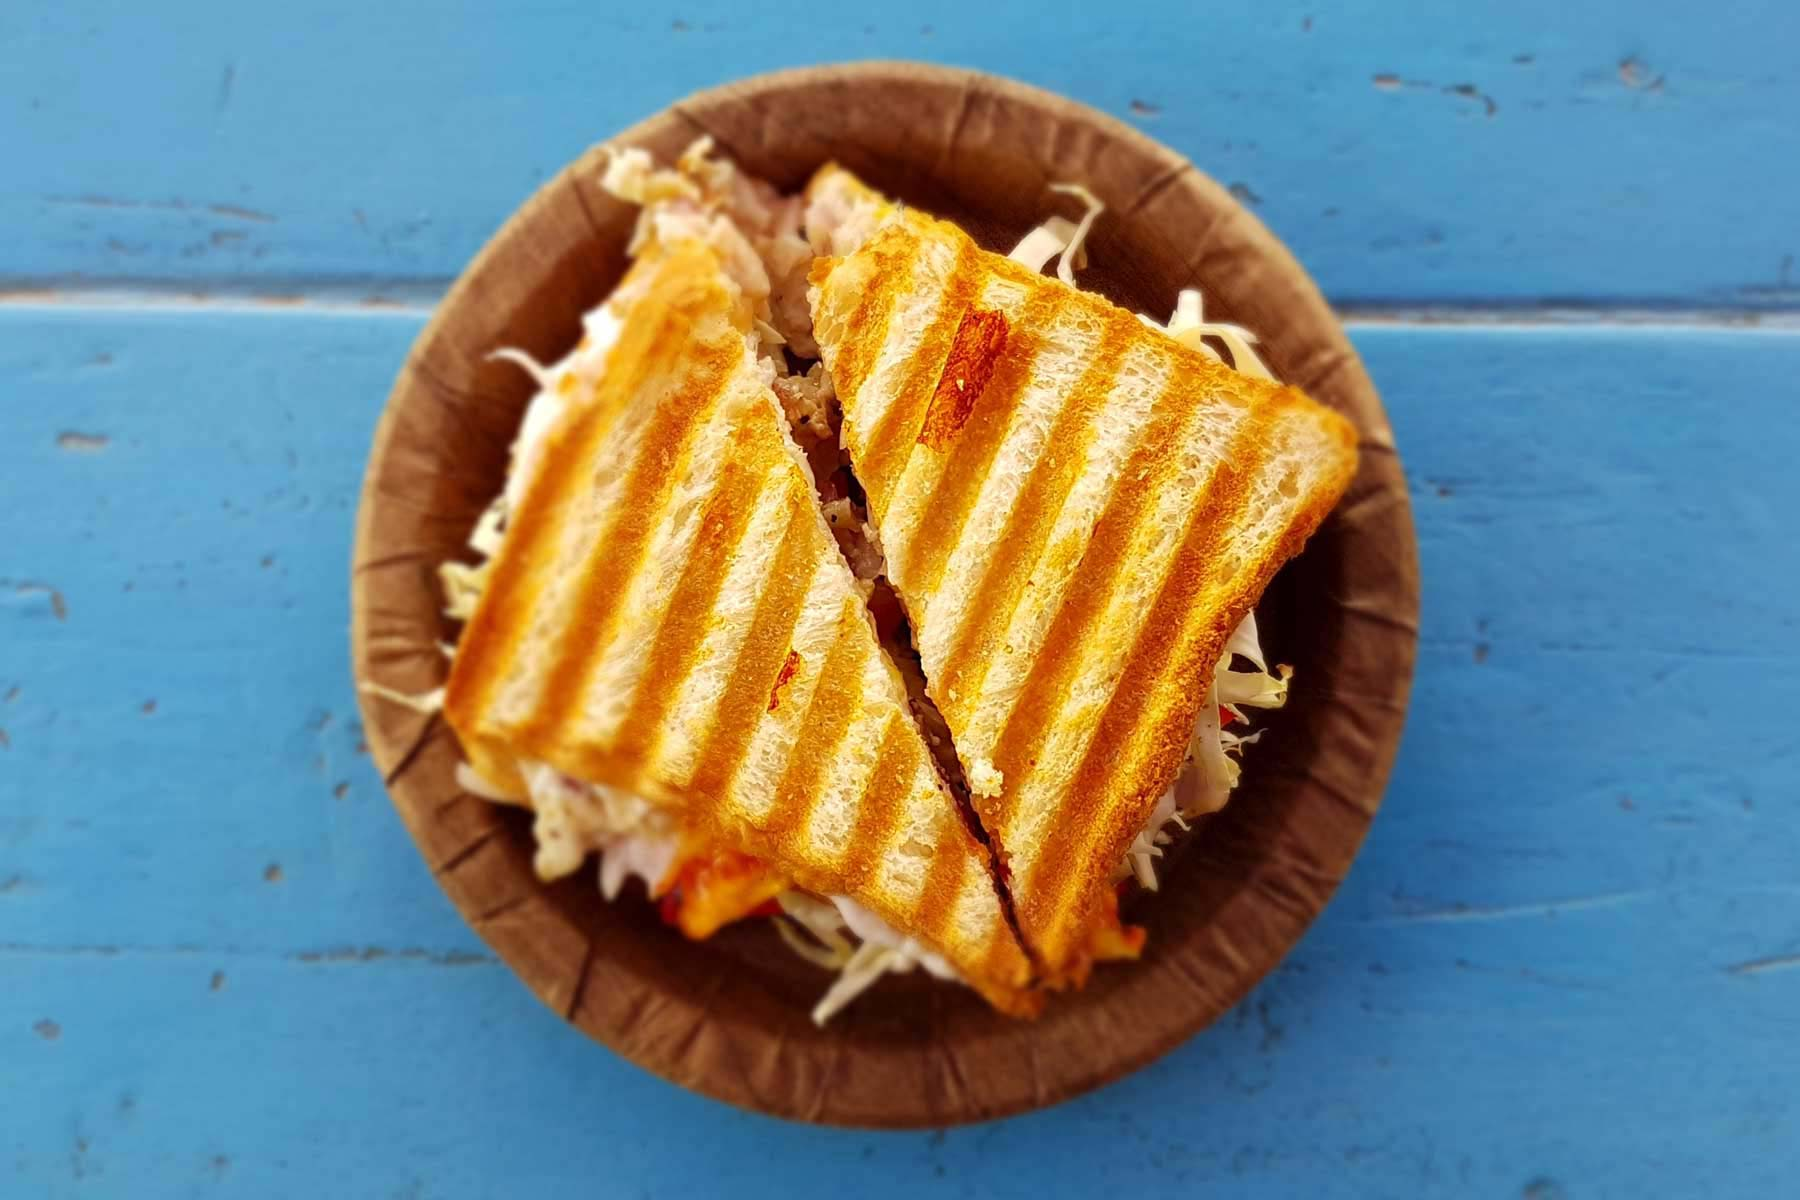 A toasted sandwich with grill marks on a brown plate sitting on a light blue painted wood table